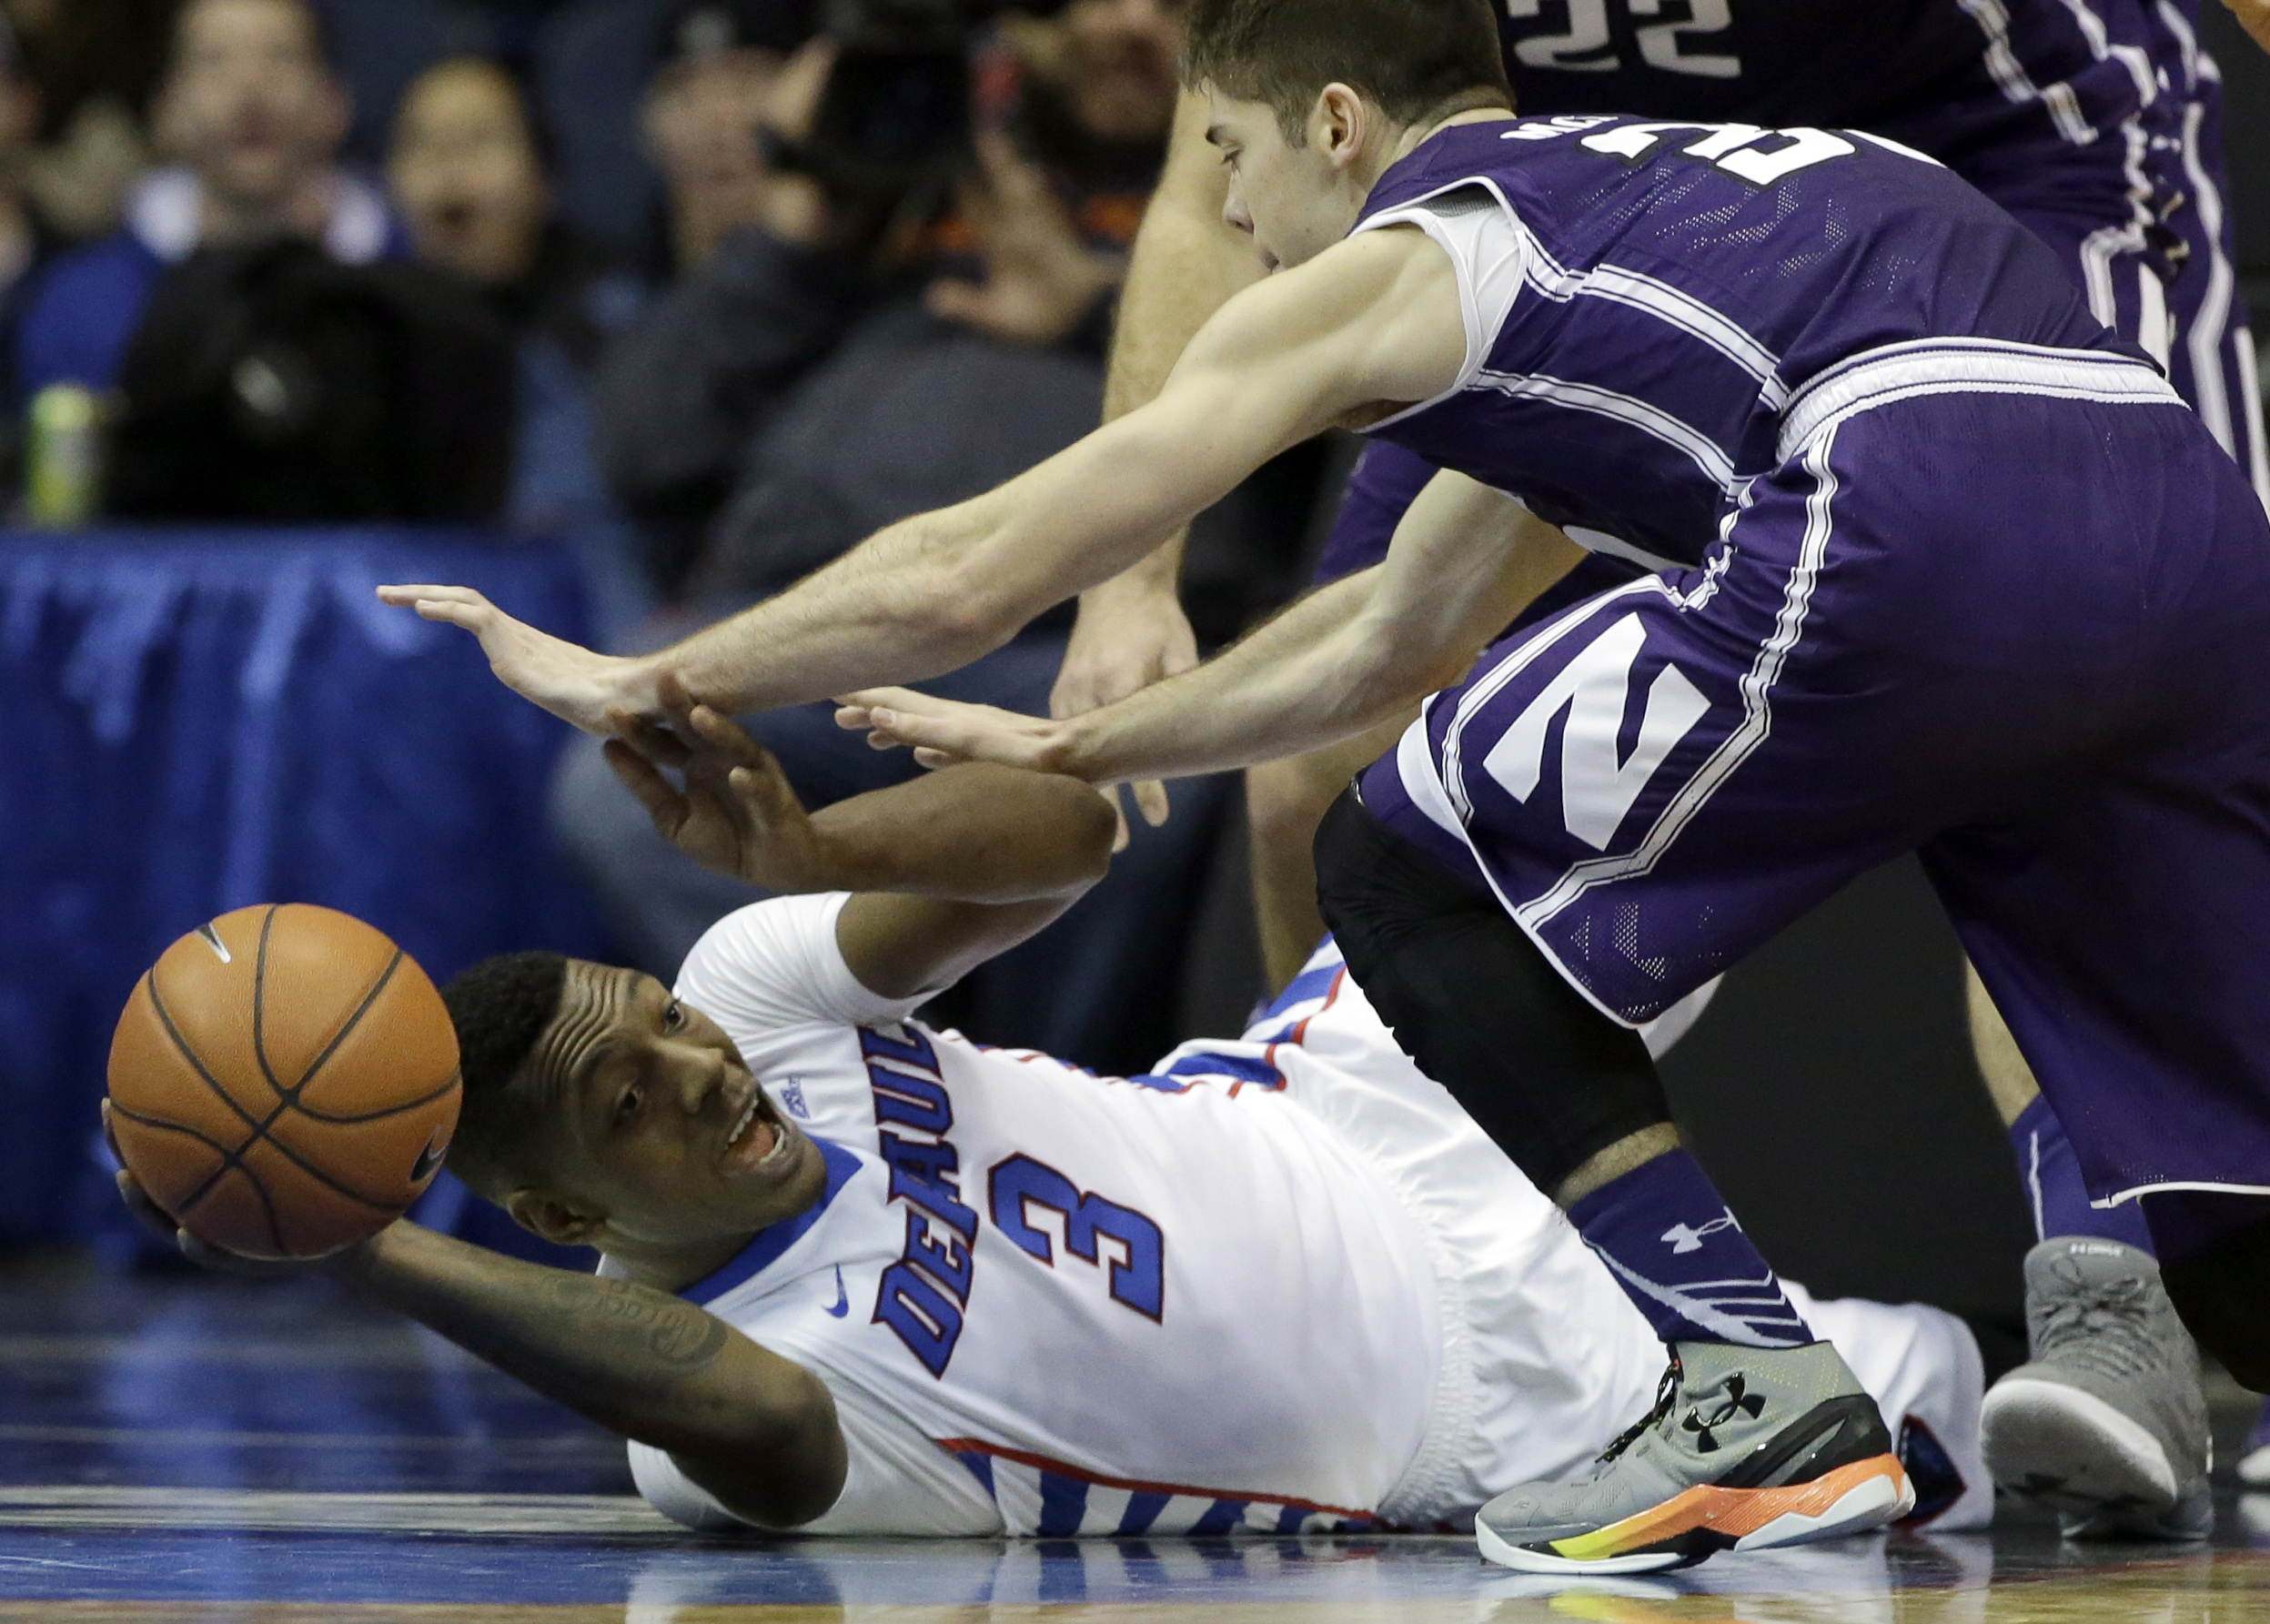 DePaul forward Rashaun Stimage, left, looks to pass against Northwestern guard Bryant McIntosh during the first half of an NCAA college basketball game on Saturday, Dec. 19, 2015, in Rosemont, Ill. (AP Photo/Nam Y. Huh)